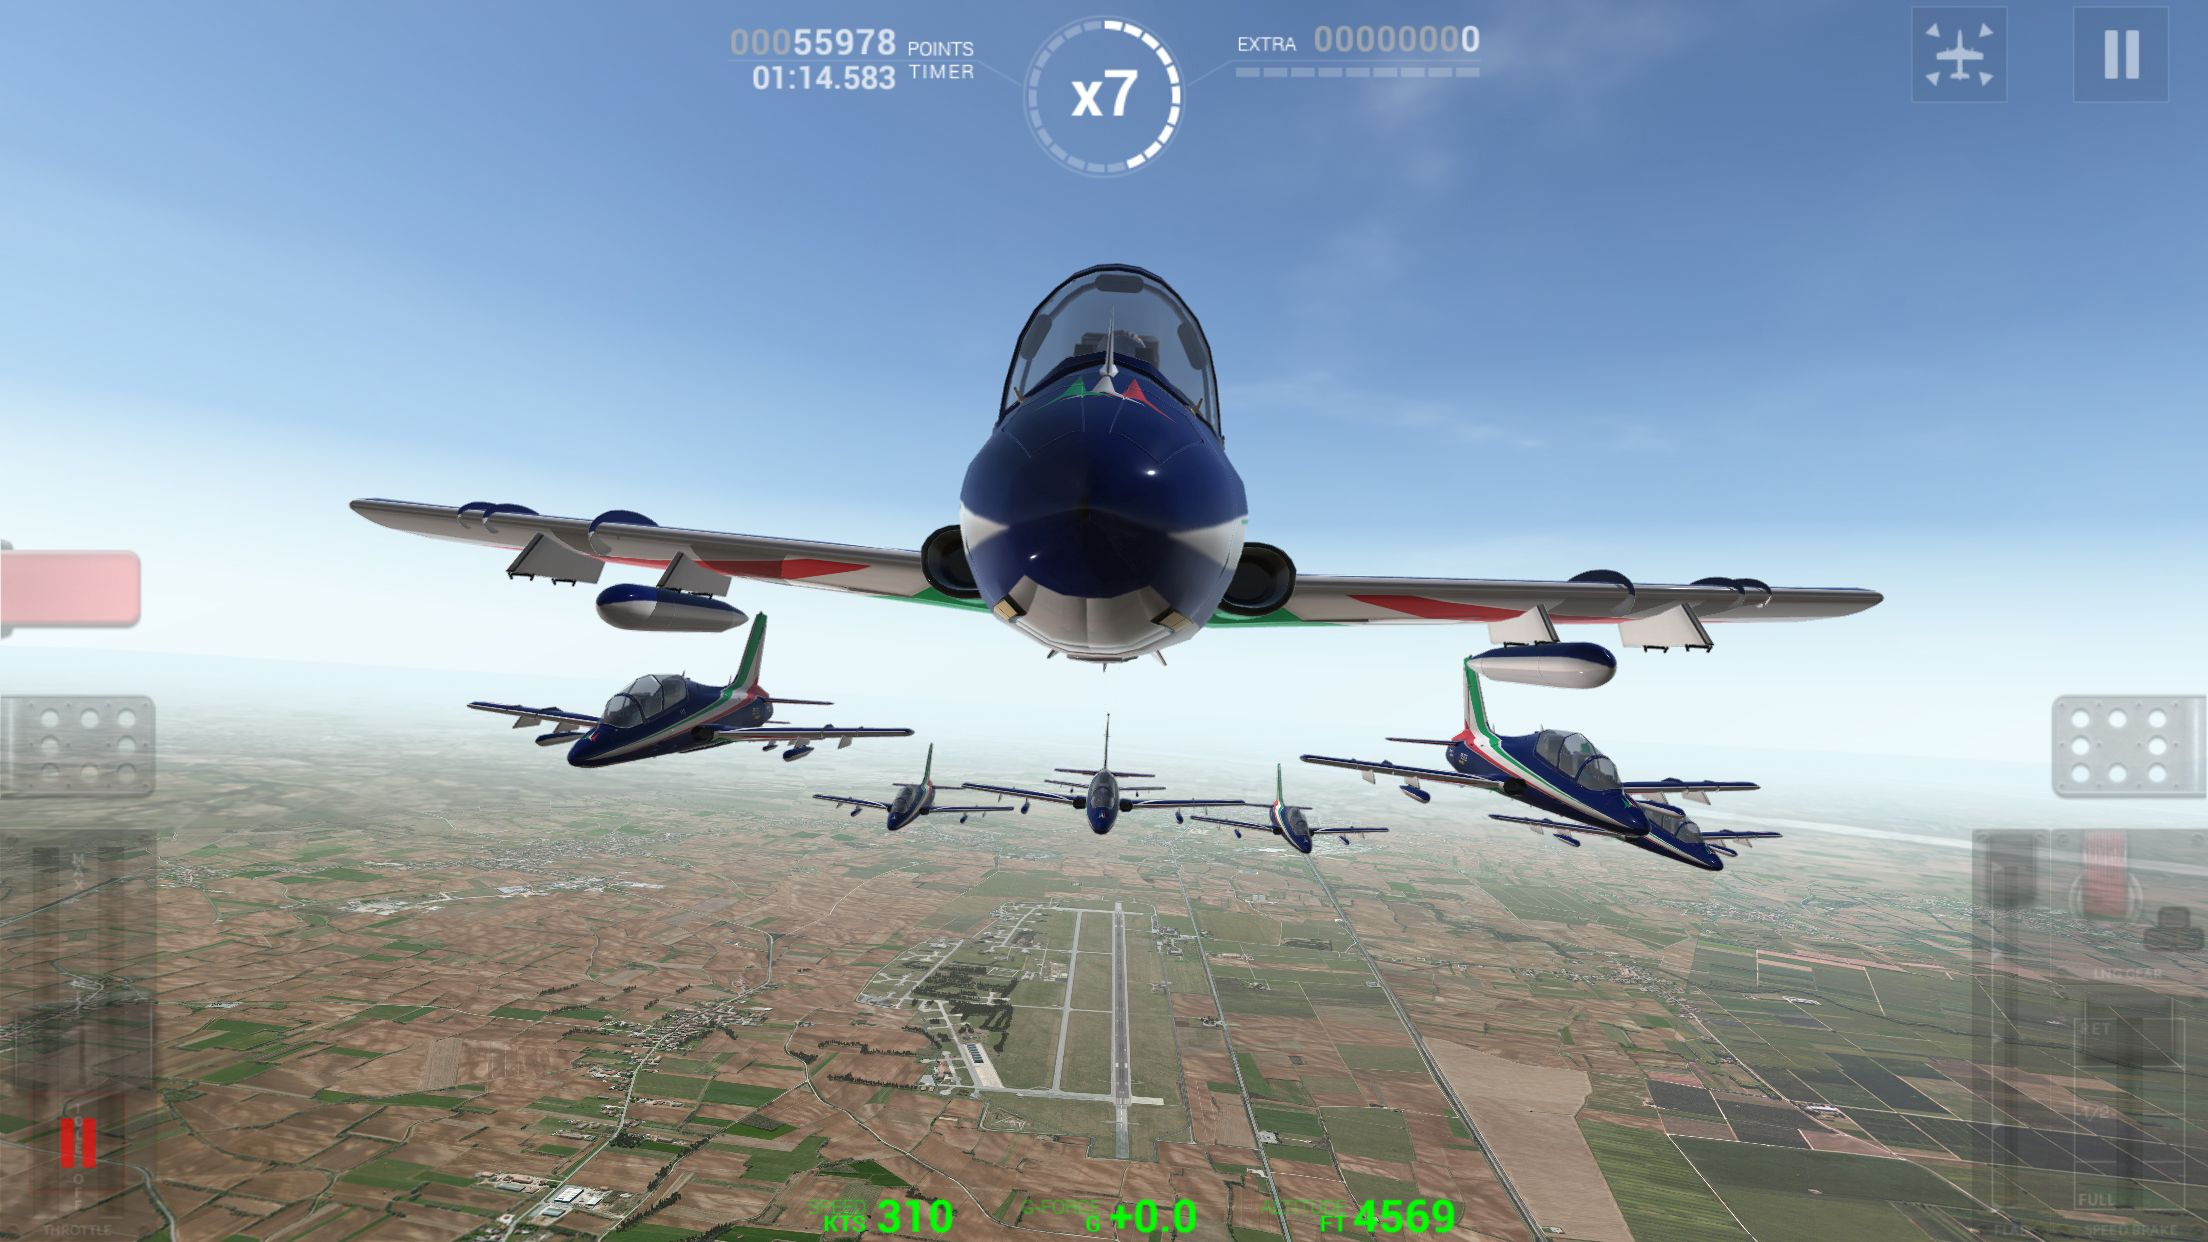 frecce-tricolori-flight-sim-pro_capturescreen__5_5-pollici-iphone6_2208x1242_20161013t144405601